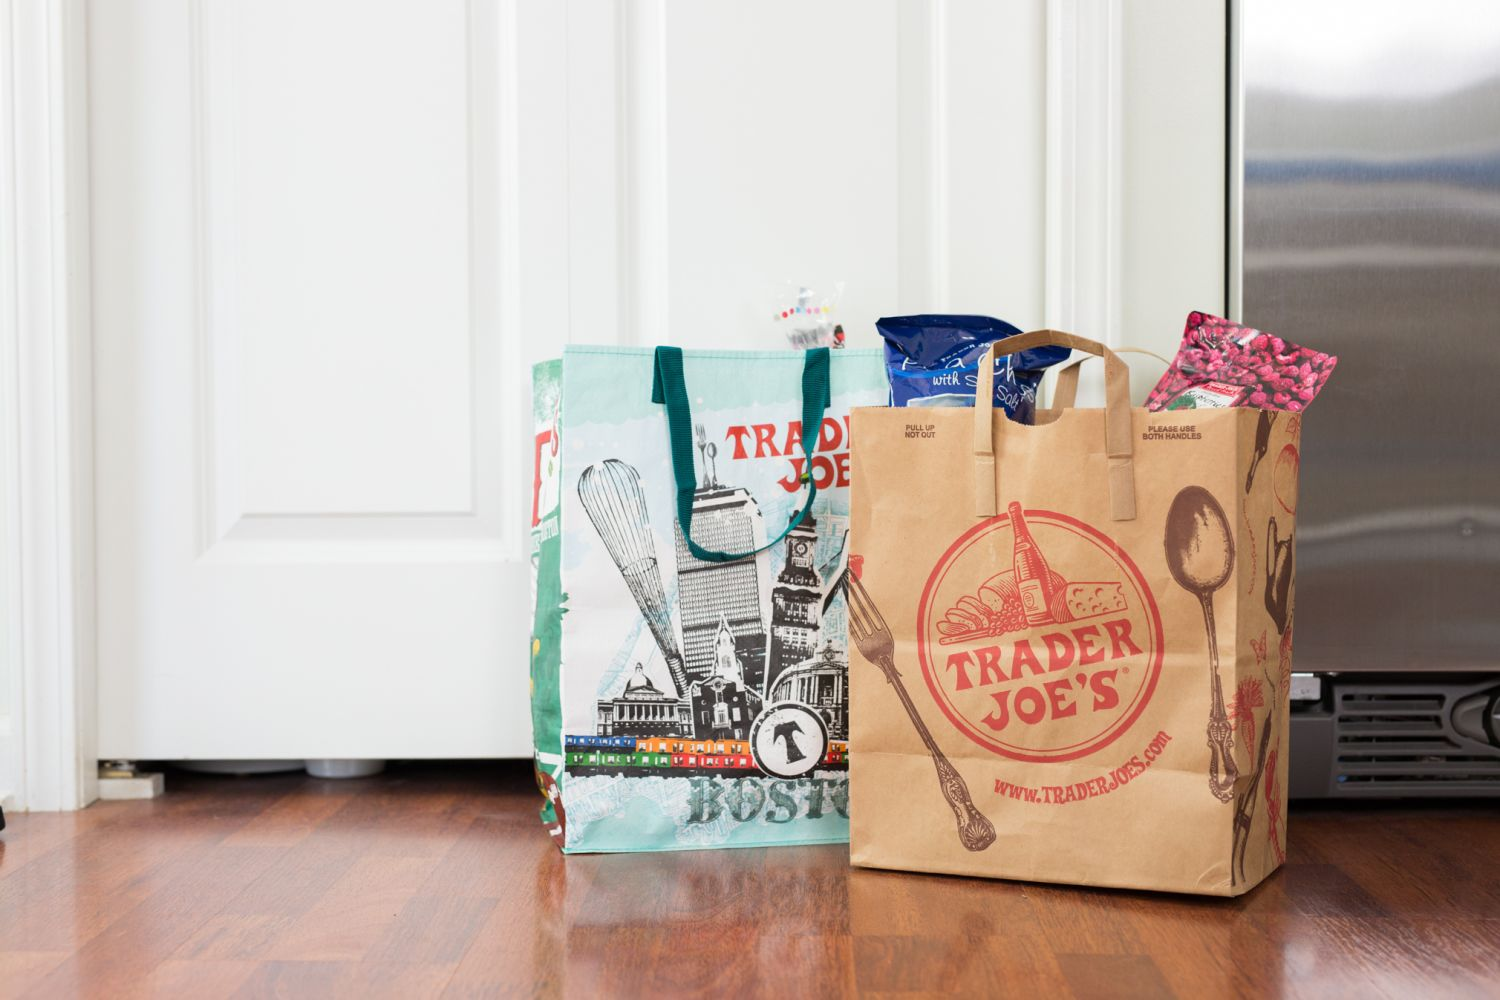 9 Skin & Beauty Products You Should Buy from Trader Joe's